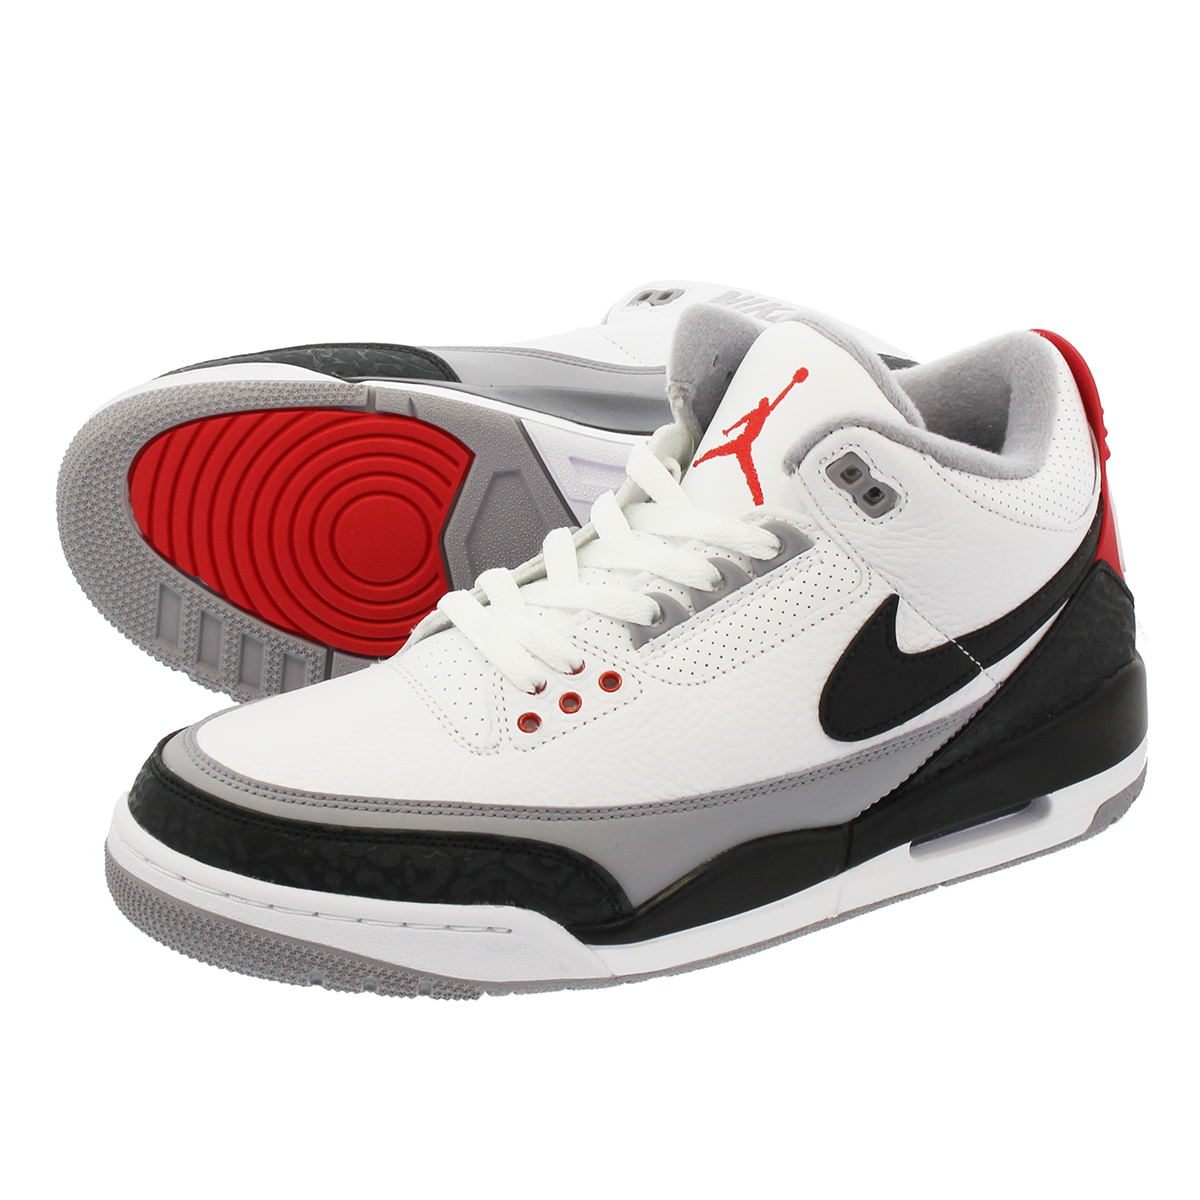 NIKE AIR JORDAN 3 RETRO TINKER NRG ナイキ エア ジョーダン 3 レトロ ティンカー NRG WHITE/FIRE RED/CEMENT GREY/BLACK aq3835-160